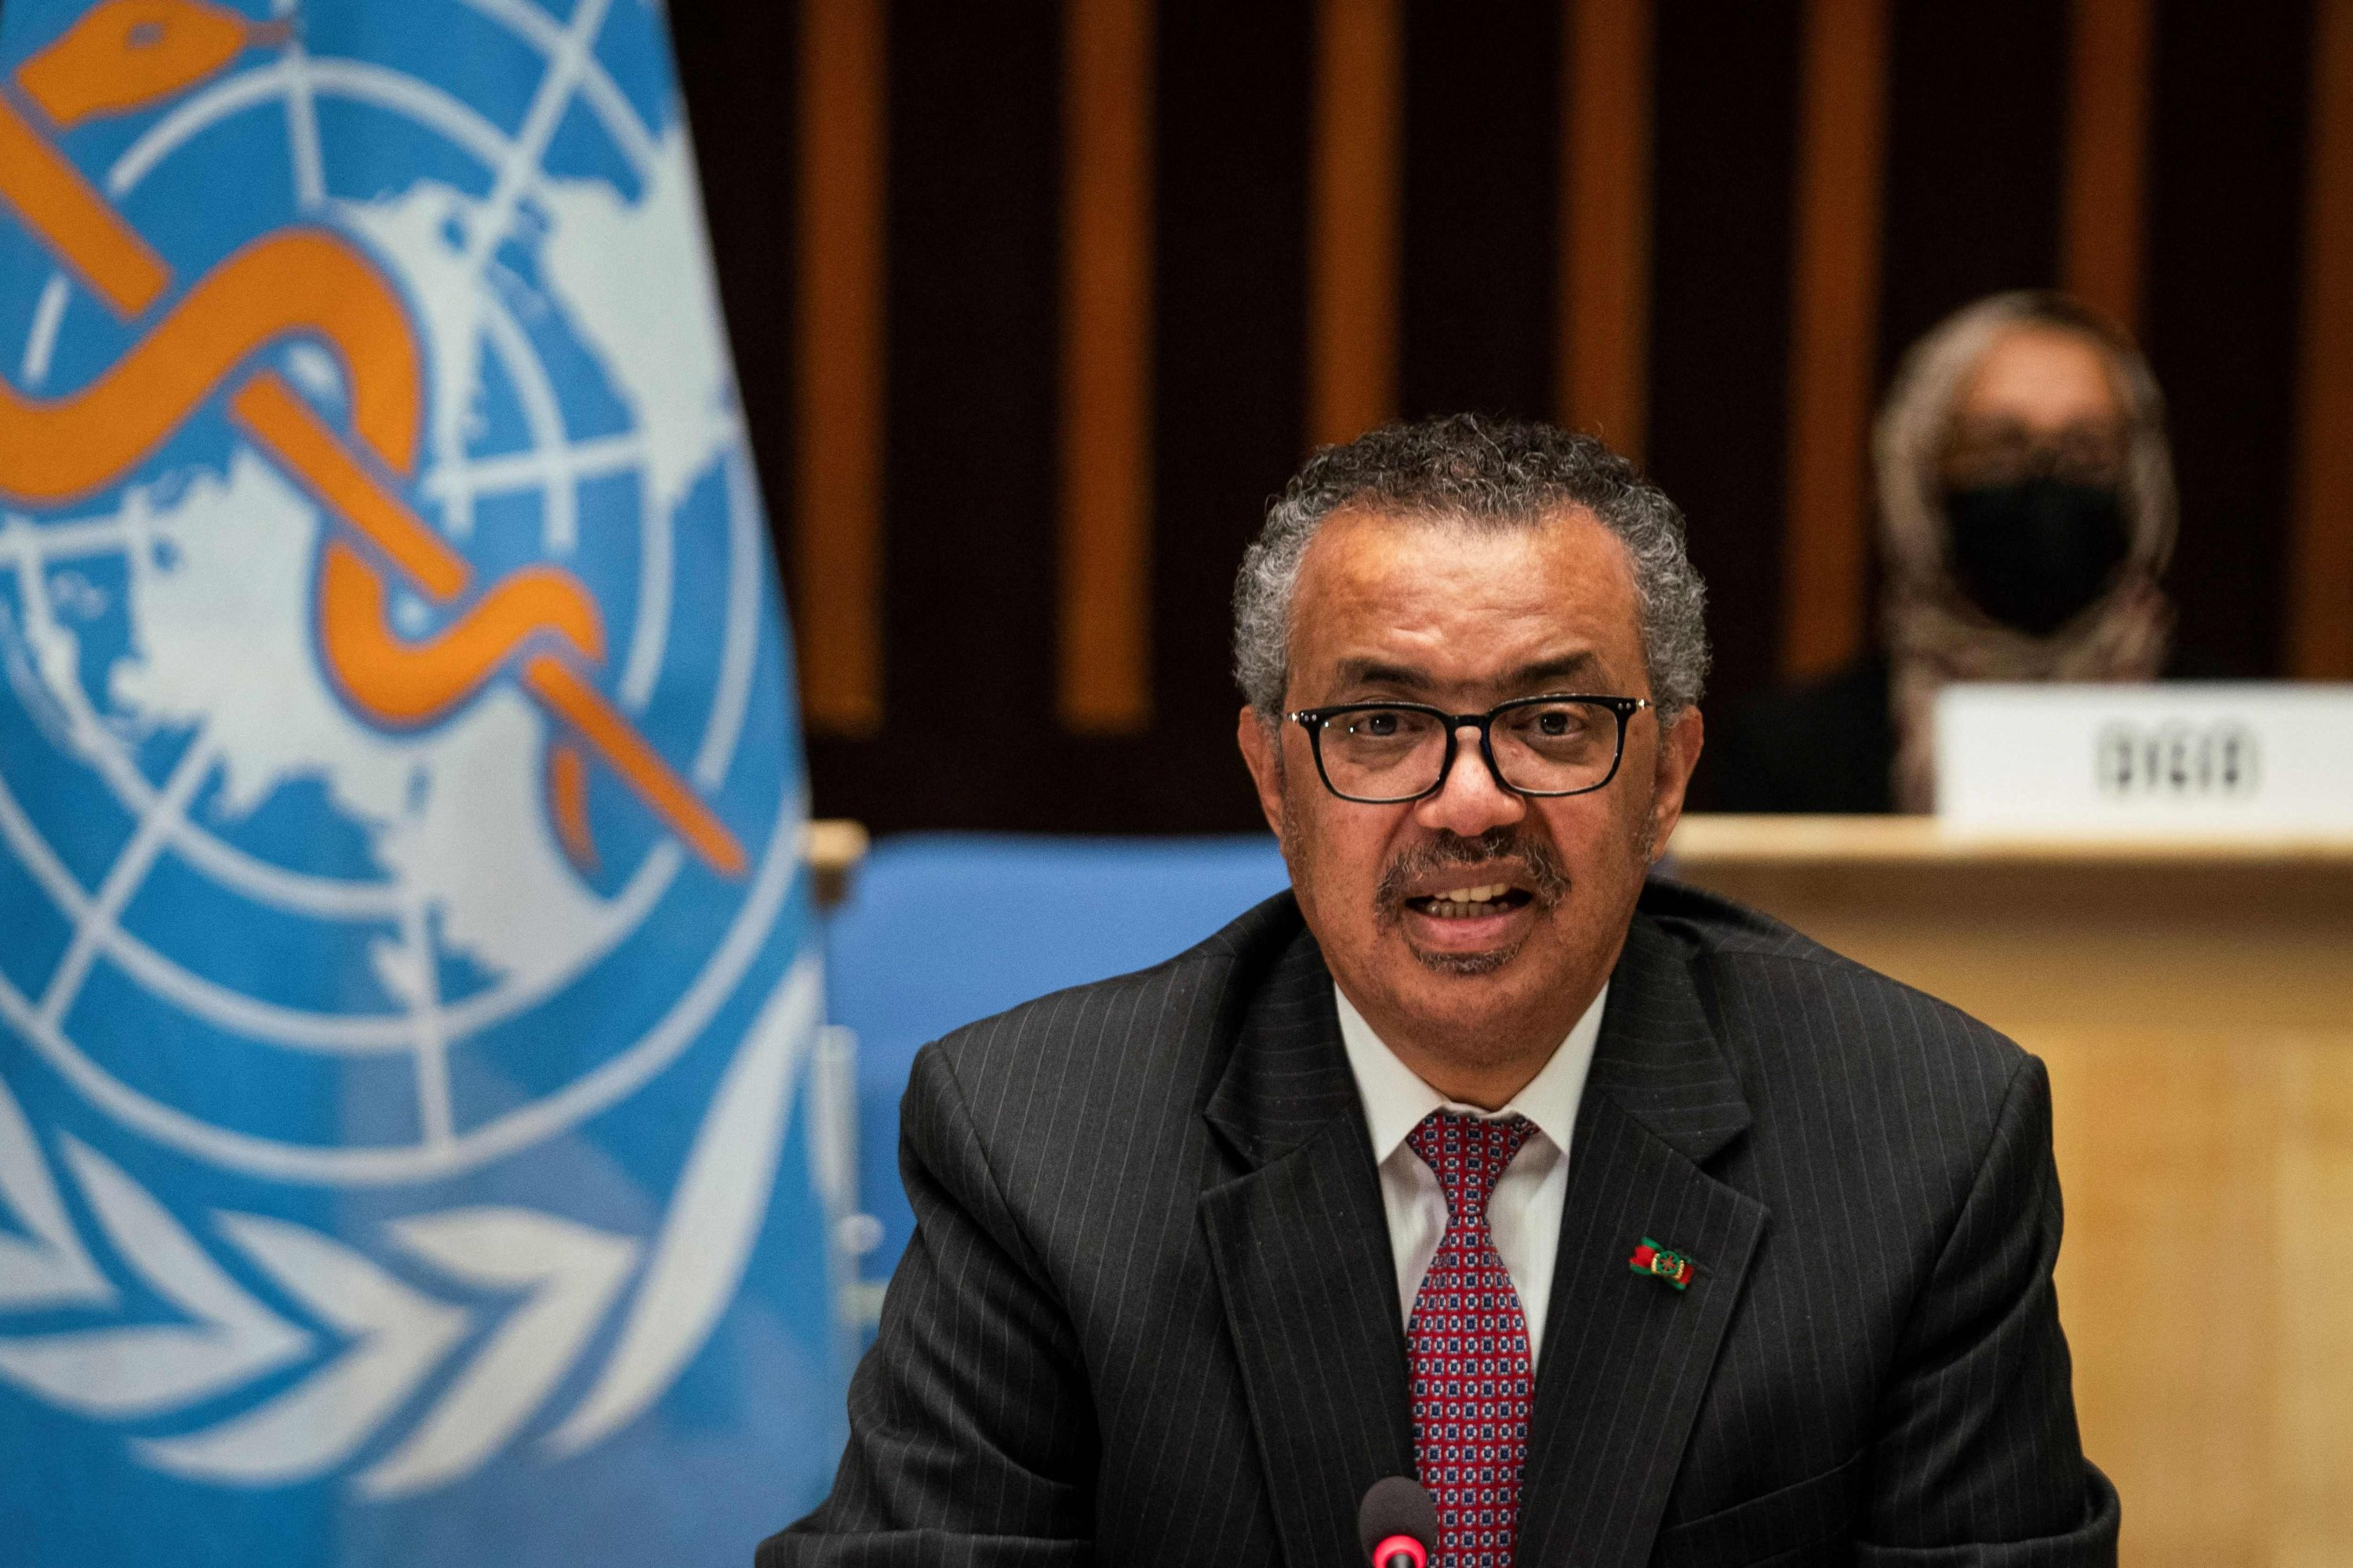 Director-General of the World Health Organization (WHO) Tedros Adhanom Ghebreyesus delivers a speech during the 74th World Health Assembly, at the WHO headquarters, in Geneva, Switzerland, May 24, 2021. (Photo by Christopher Black / World Health Organization handout / AFP)